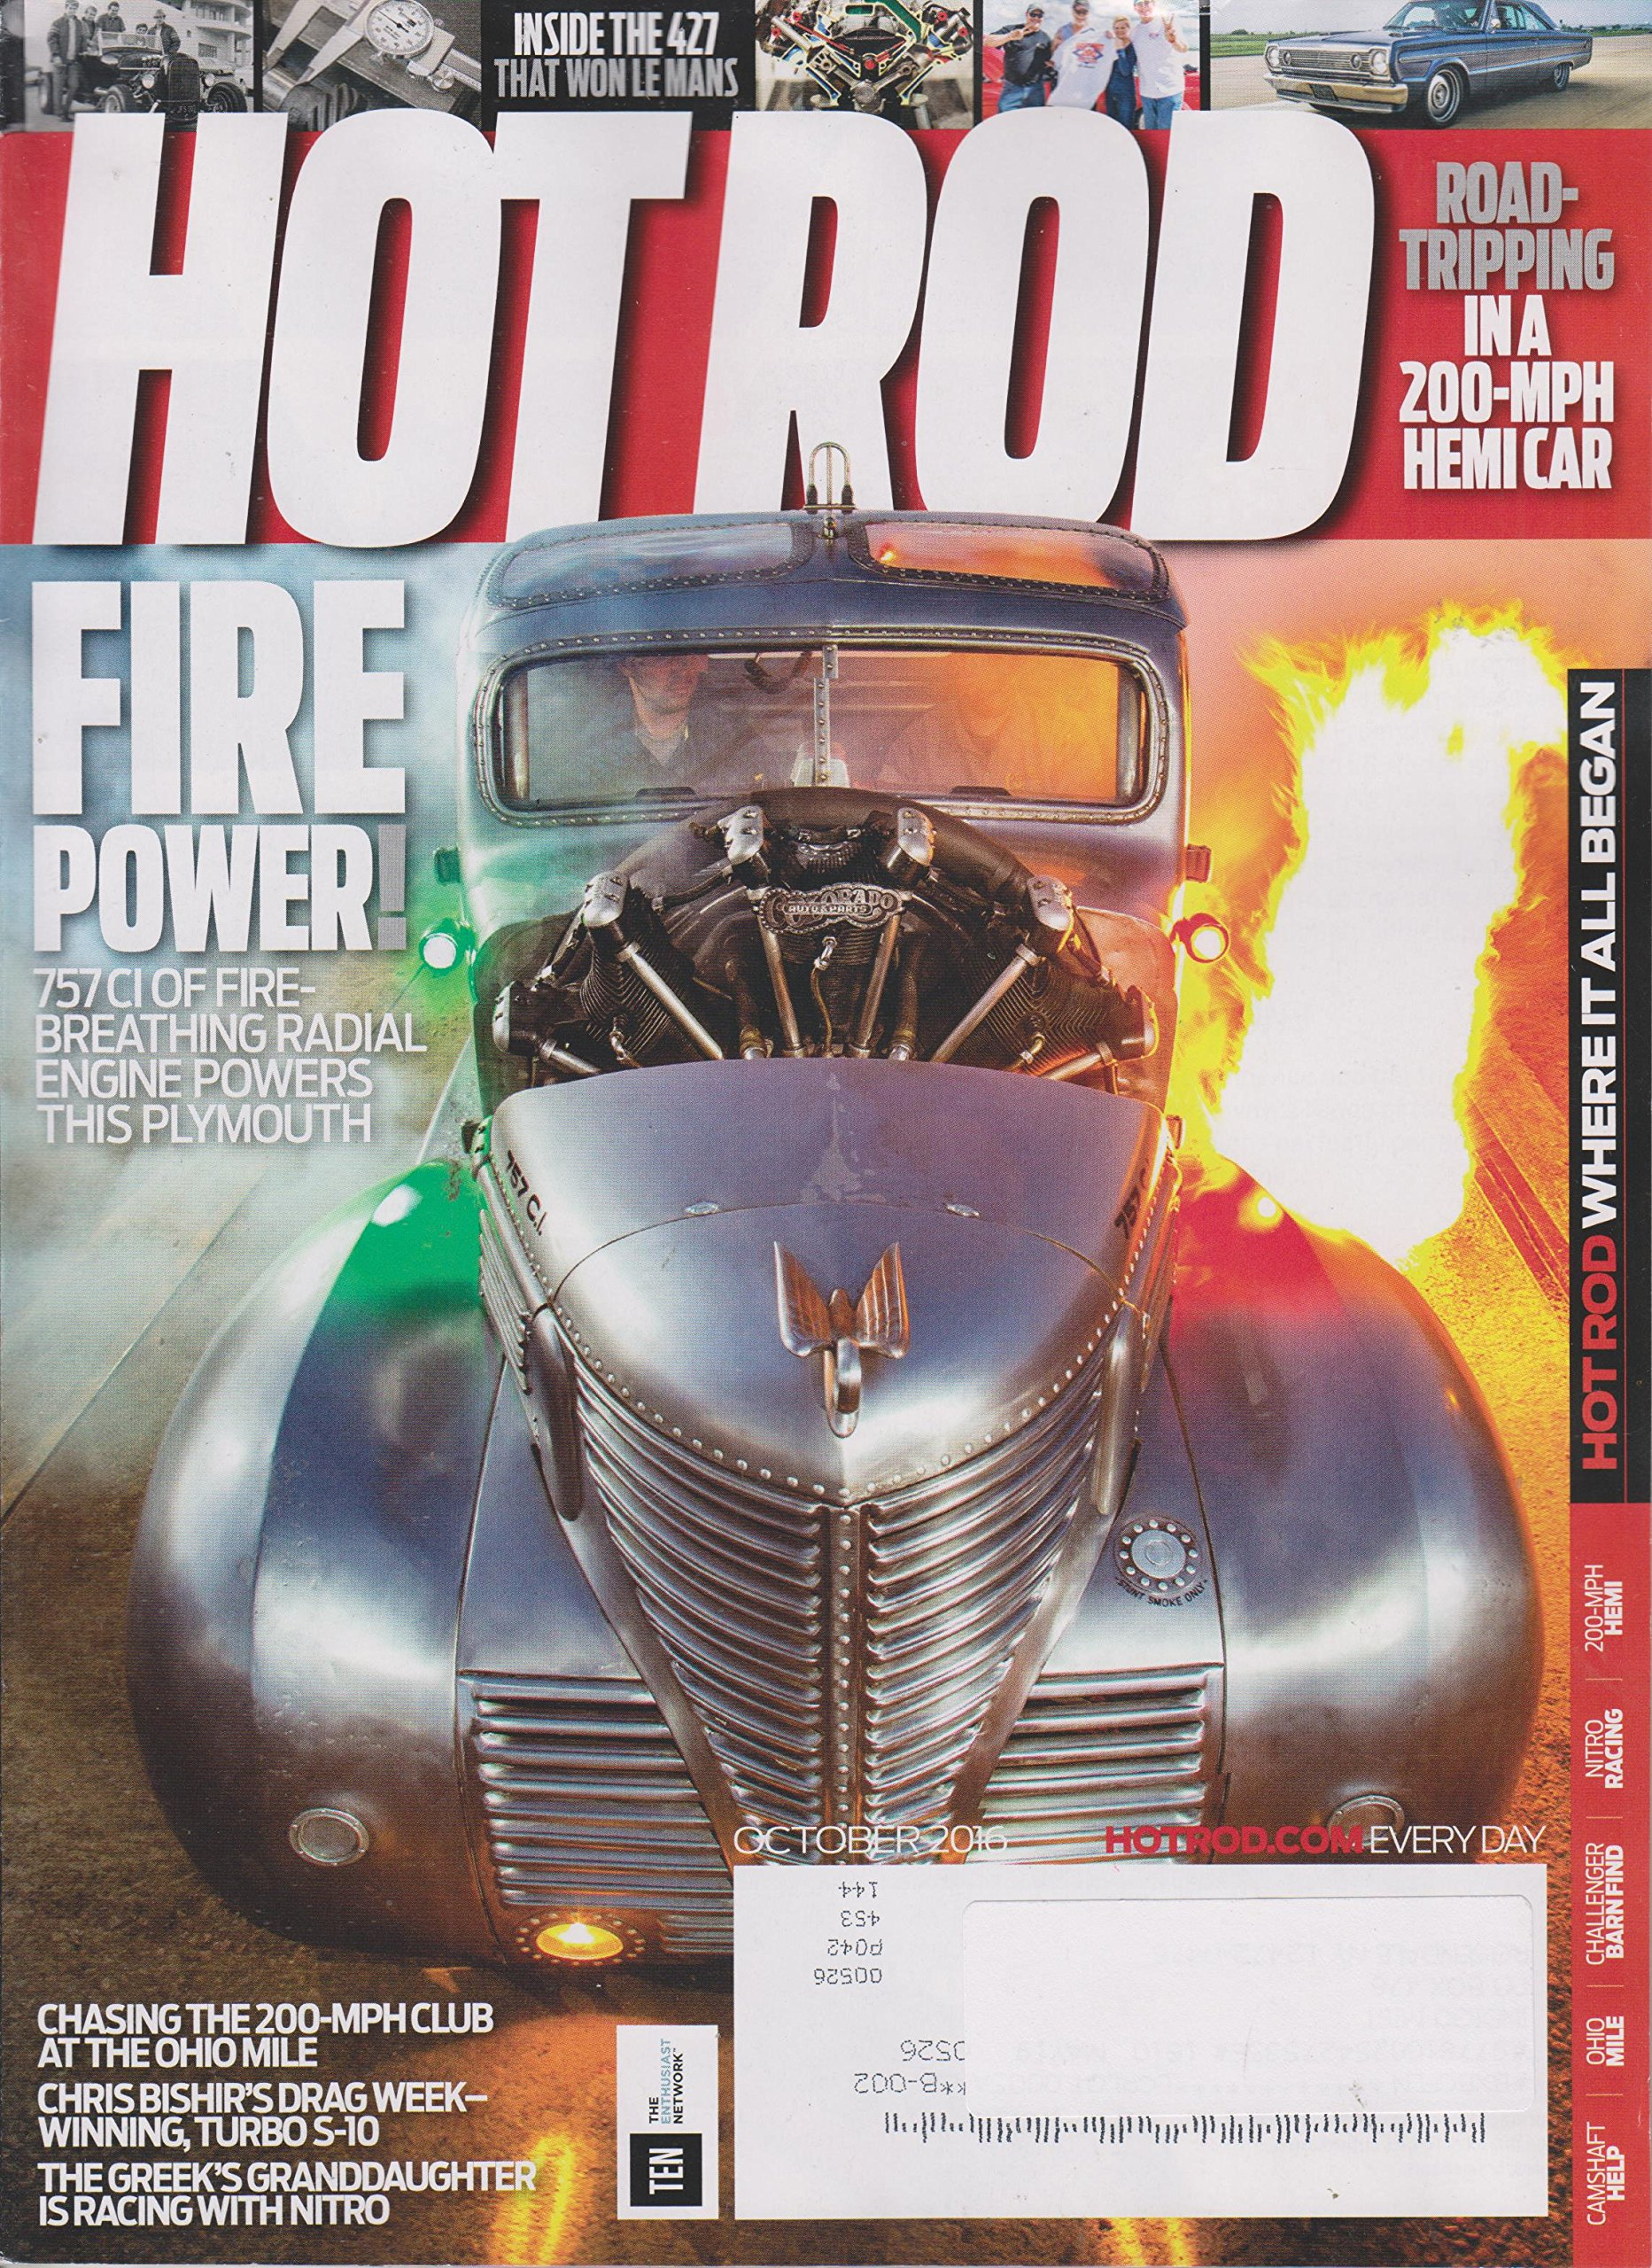 Hot Rod October 2016 Fire Power! 757 CI of Fire - Breathing Radial Engine Powers This Plymouth pdf epub